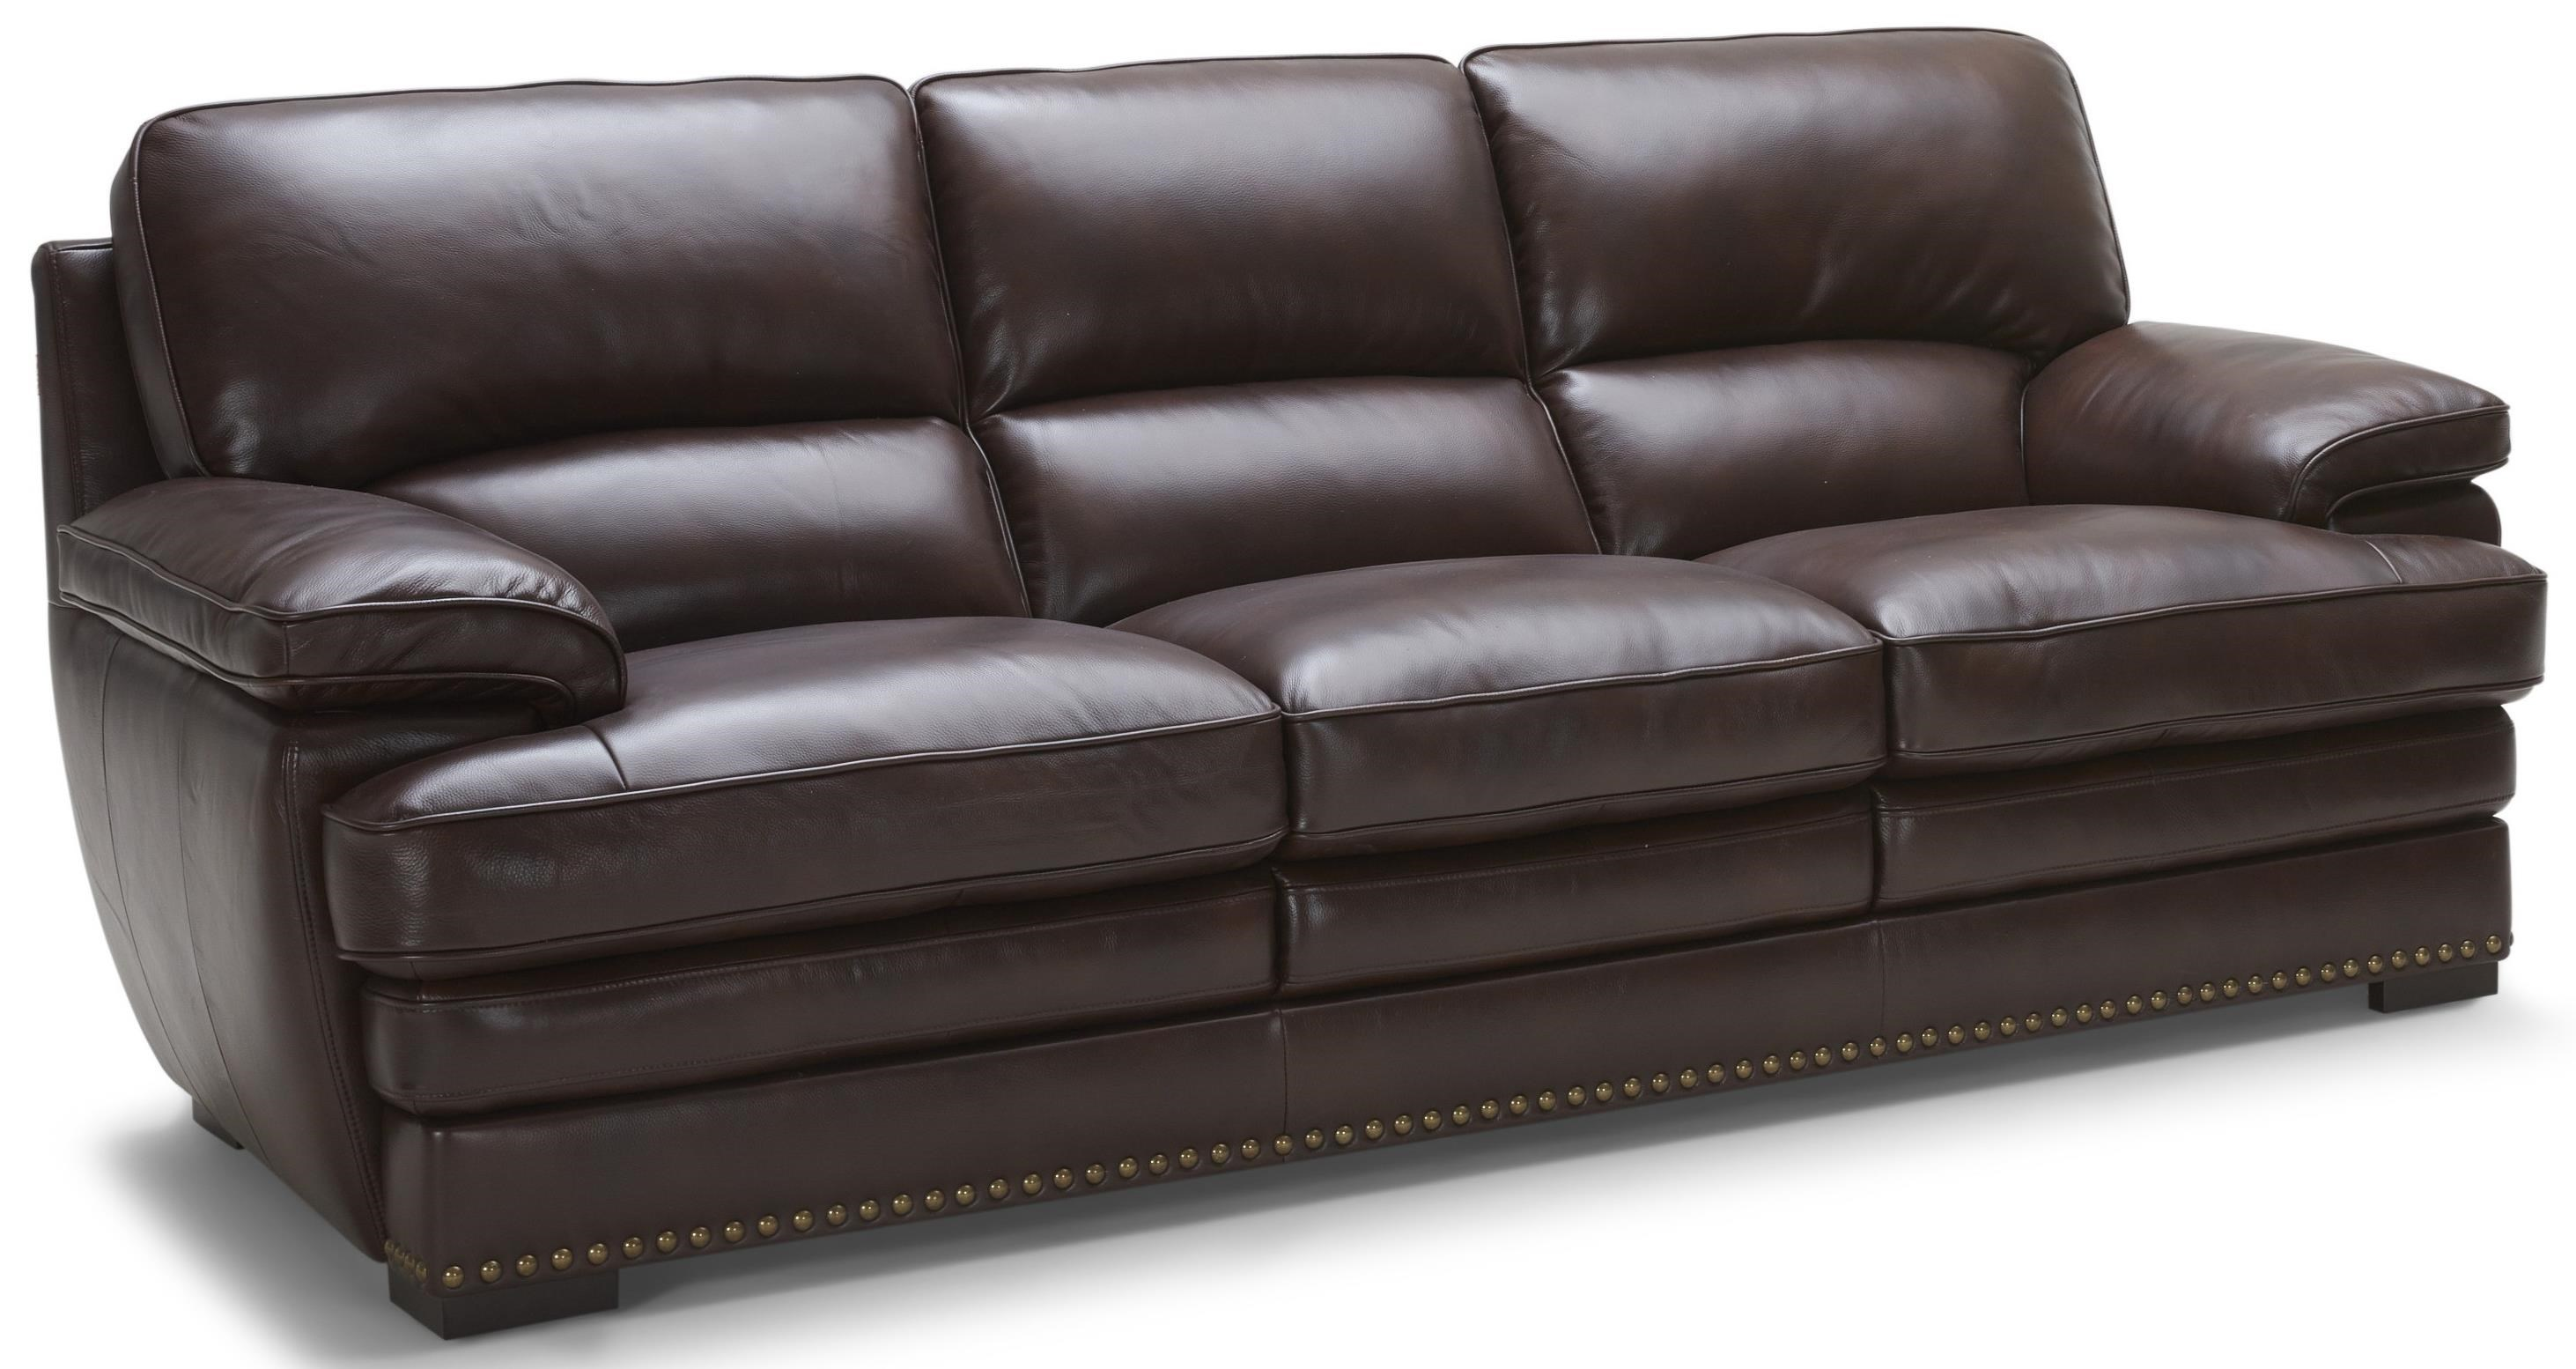 Warehouse M 3301Brown Leather Sofa ...